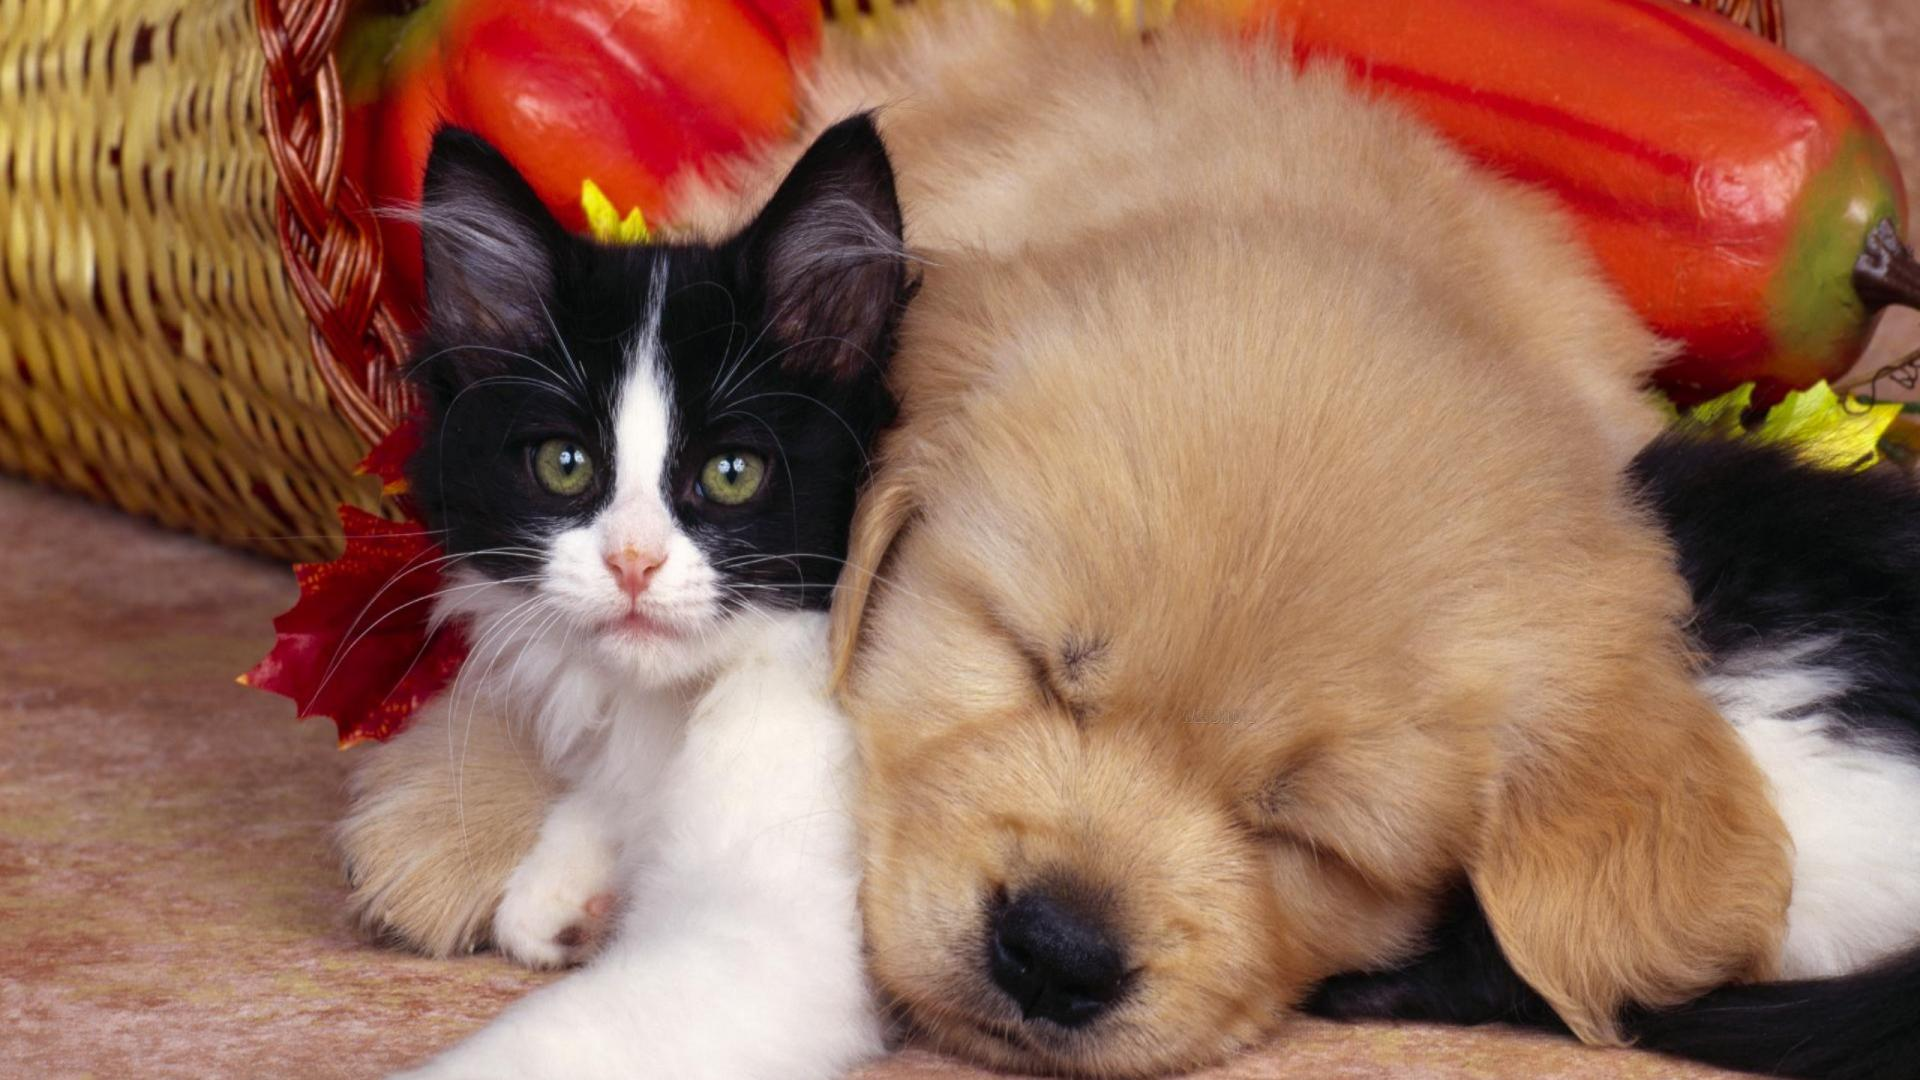 cat-and-dog-friendship